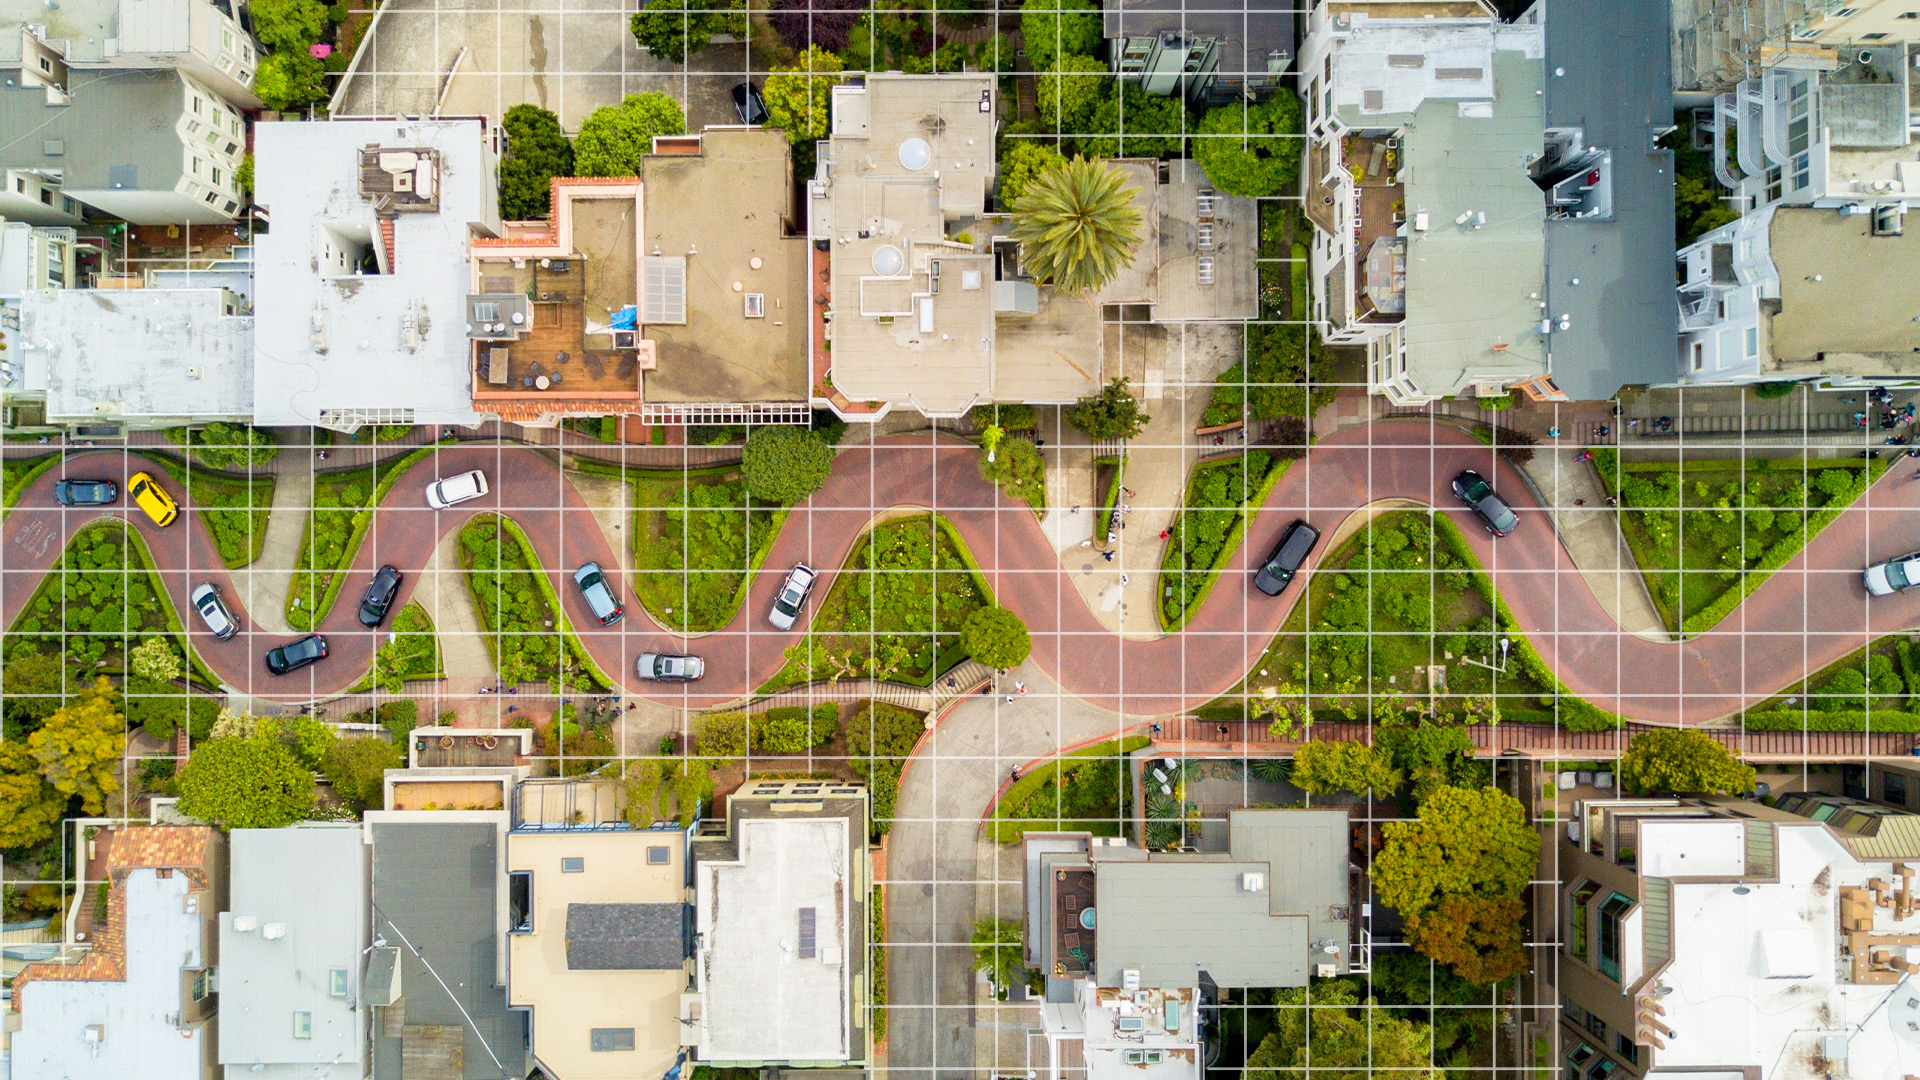 meandering road in between residential houses